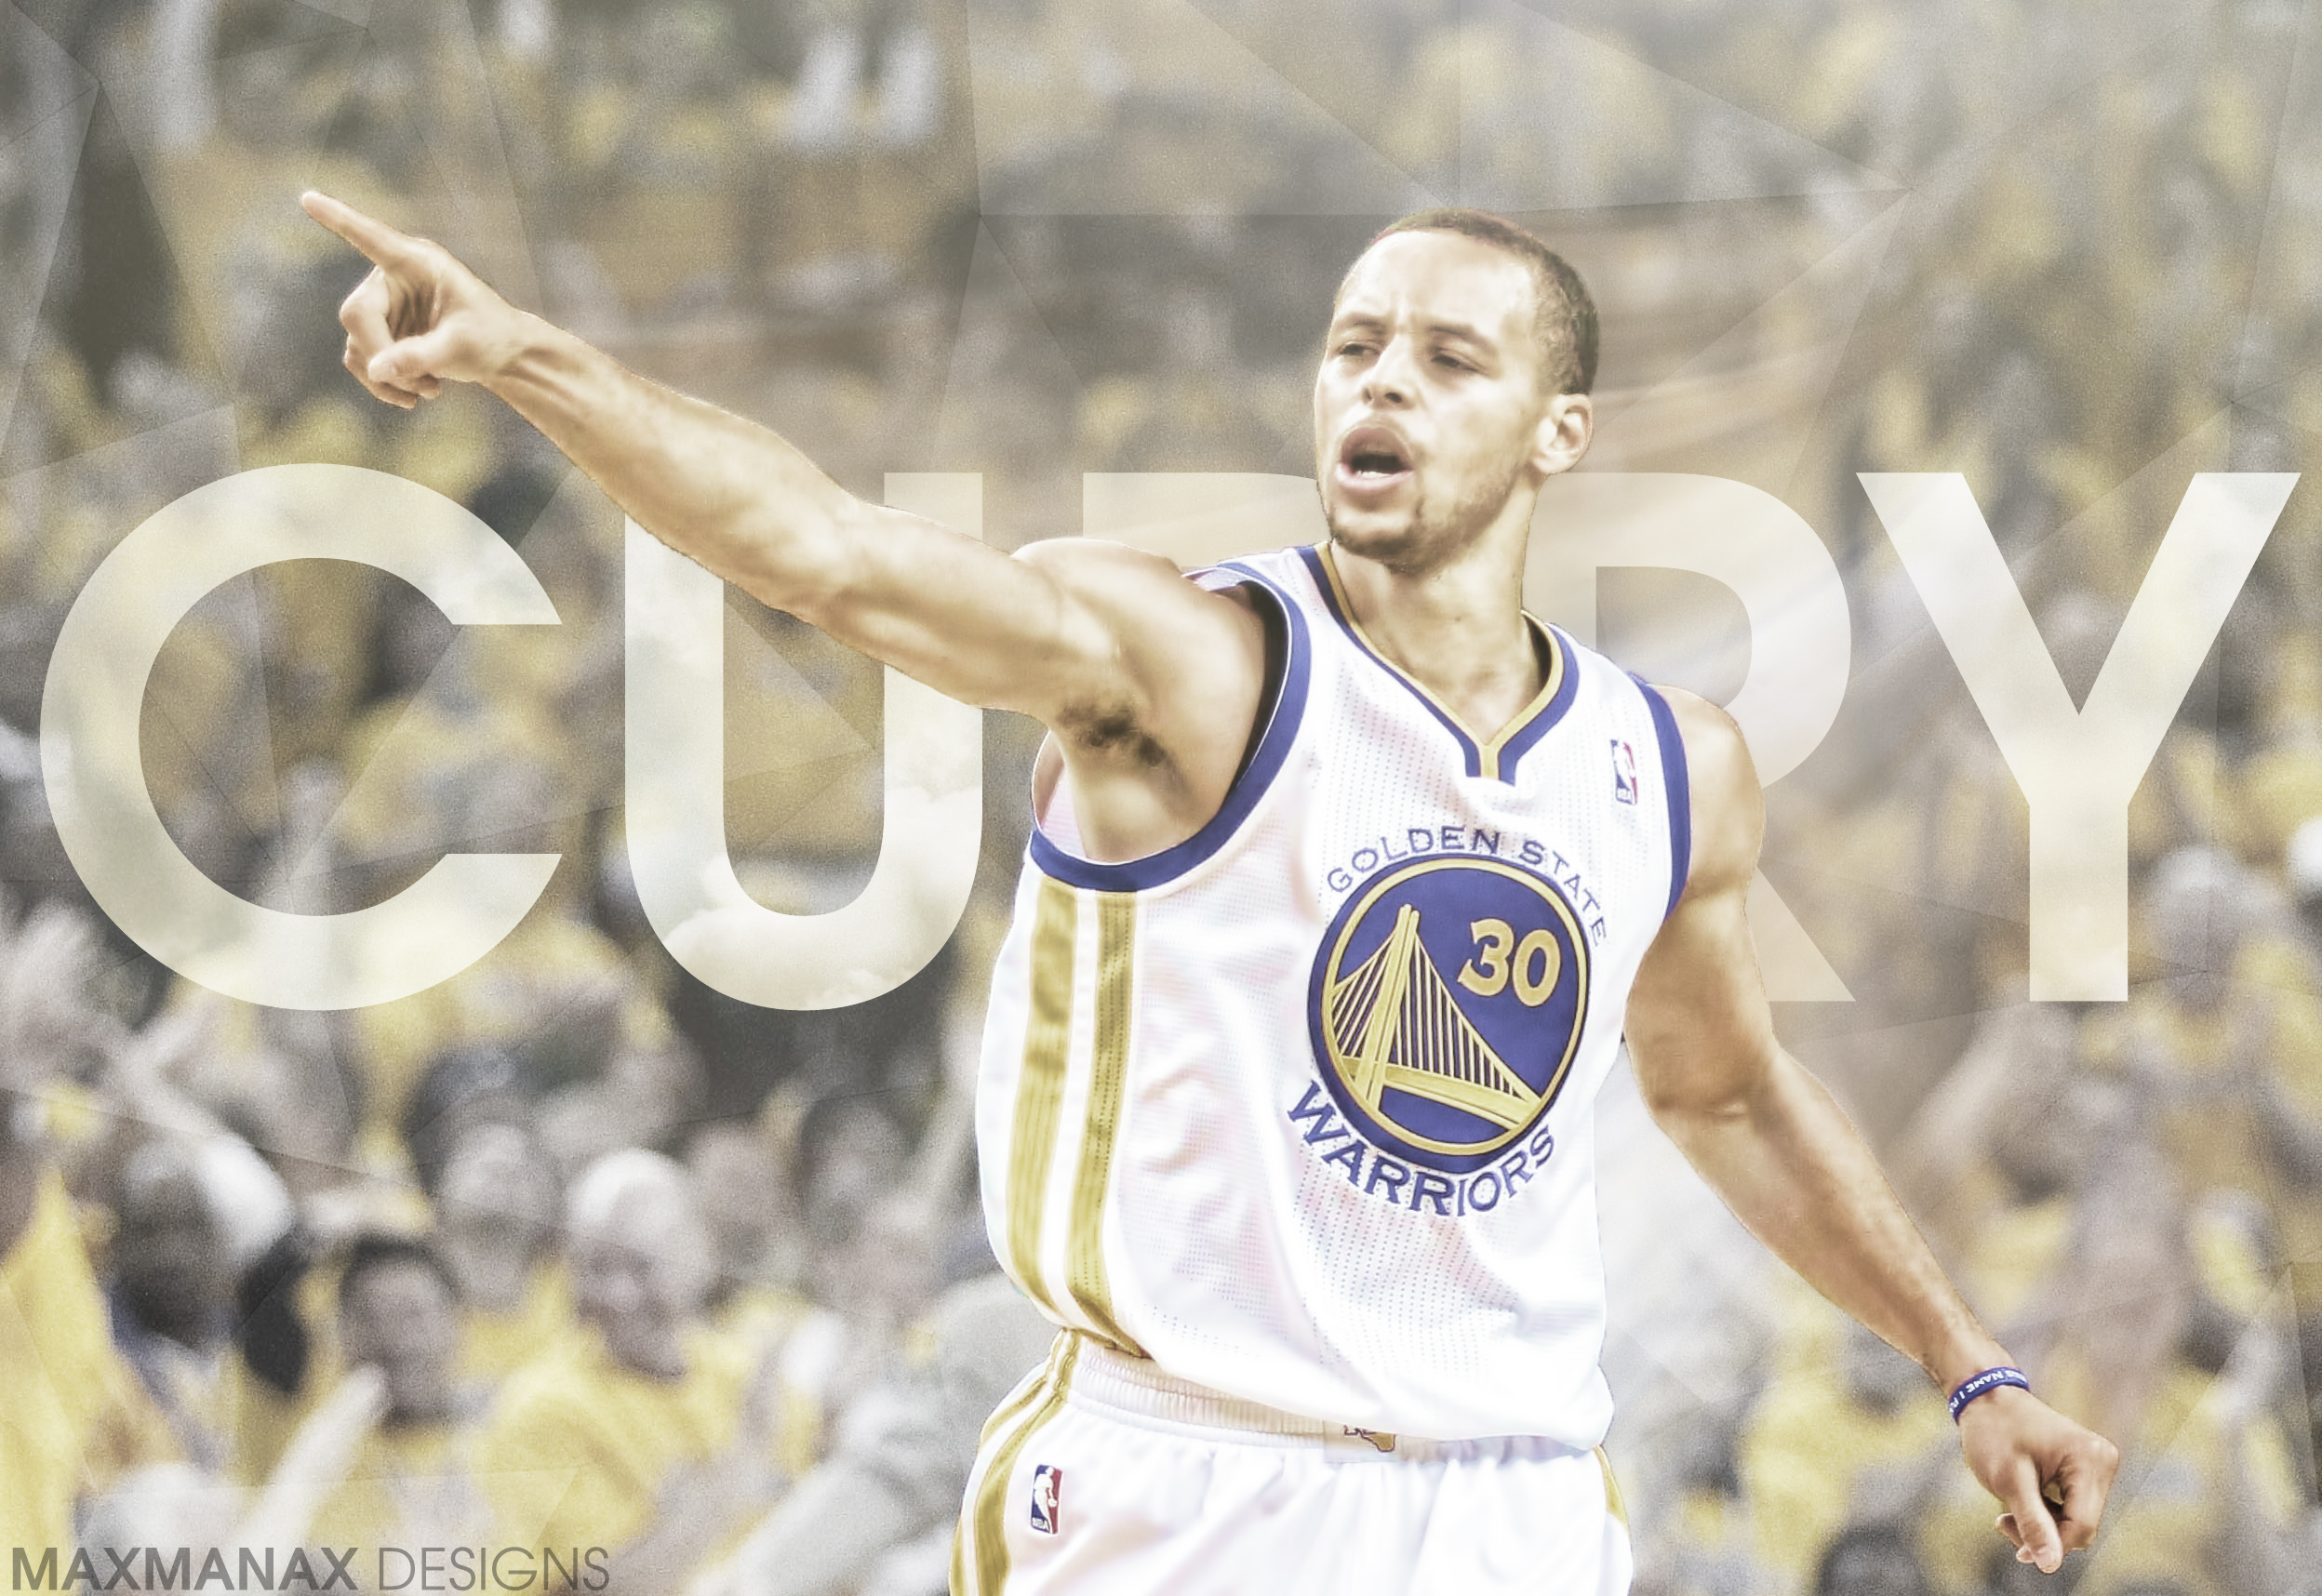 Steph Curry Wallpaper by maxmanax 2496x1716